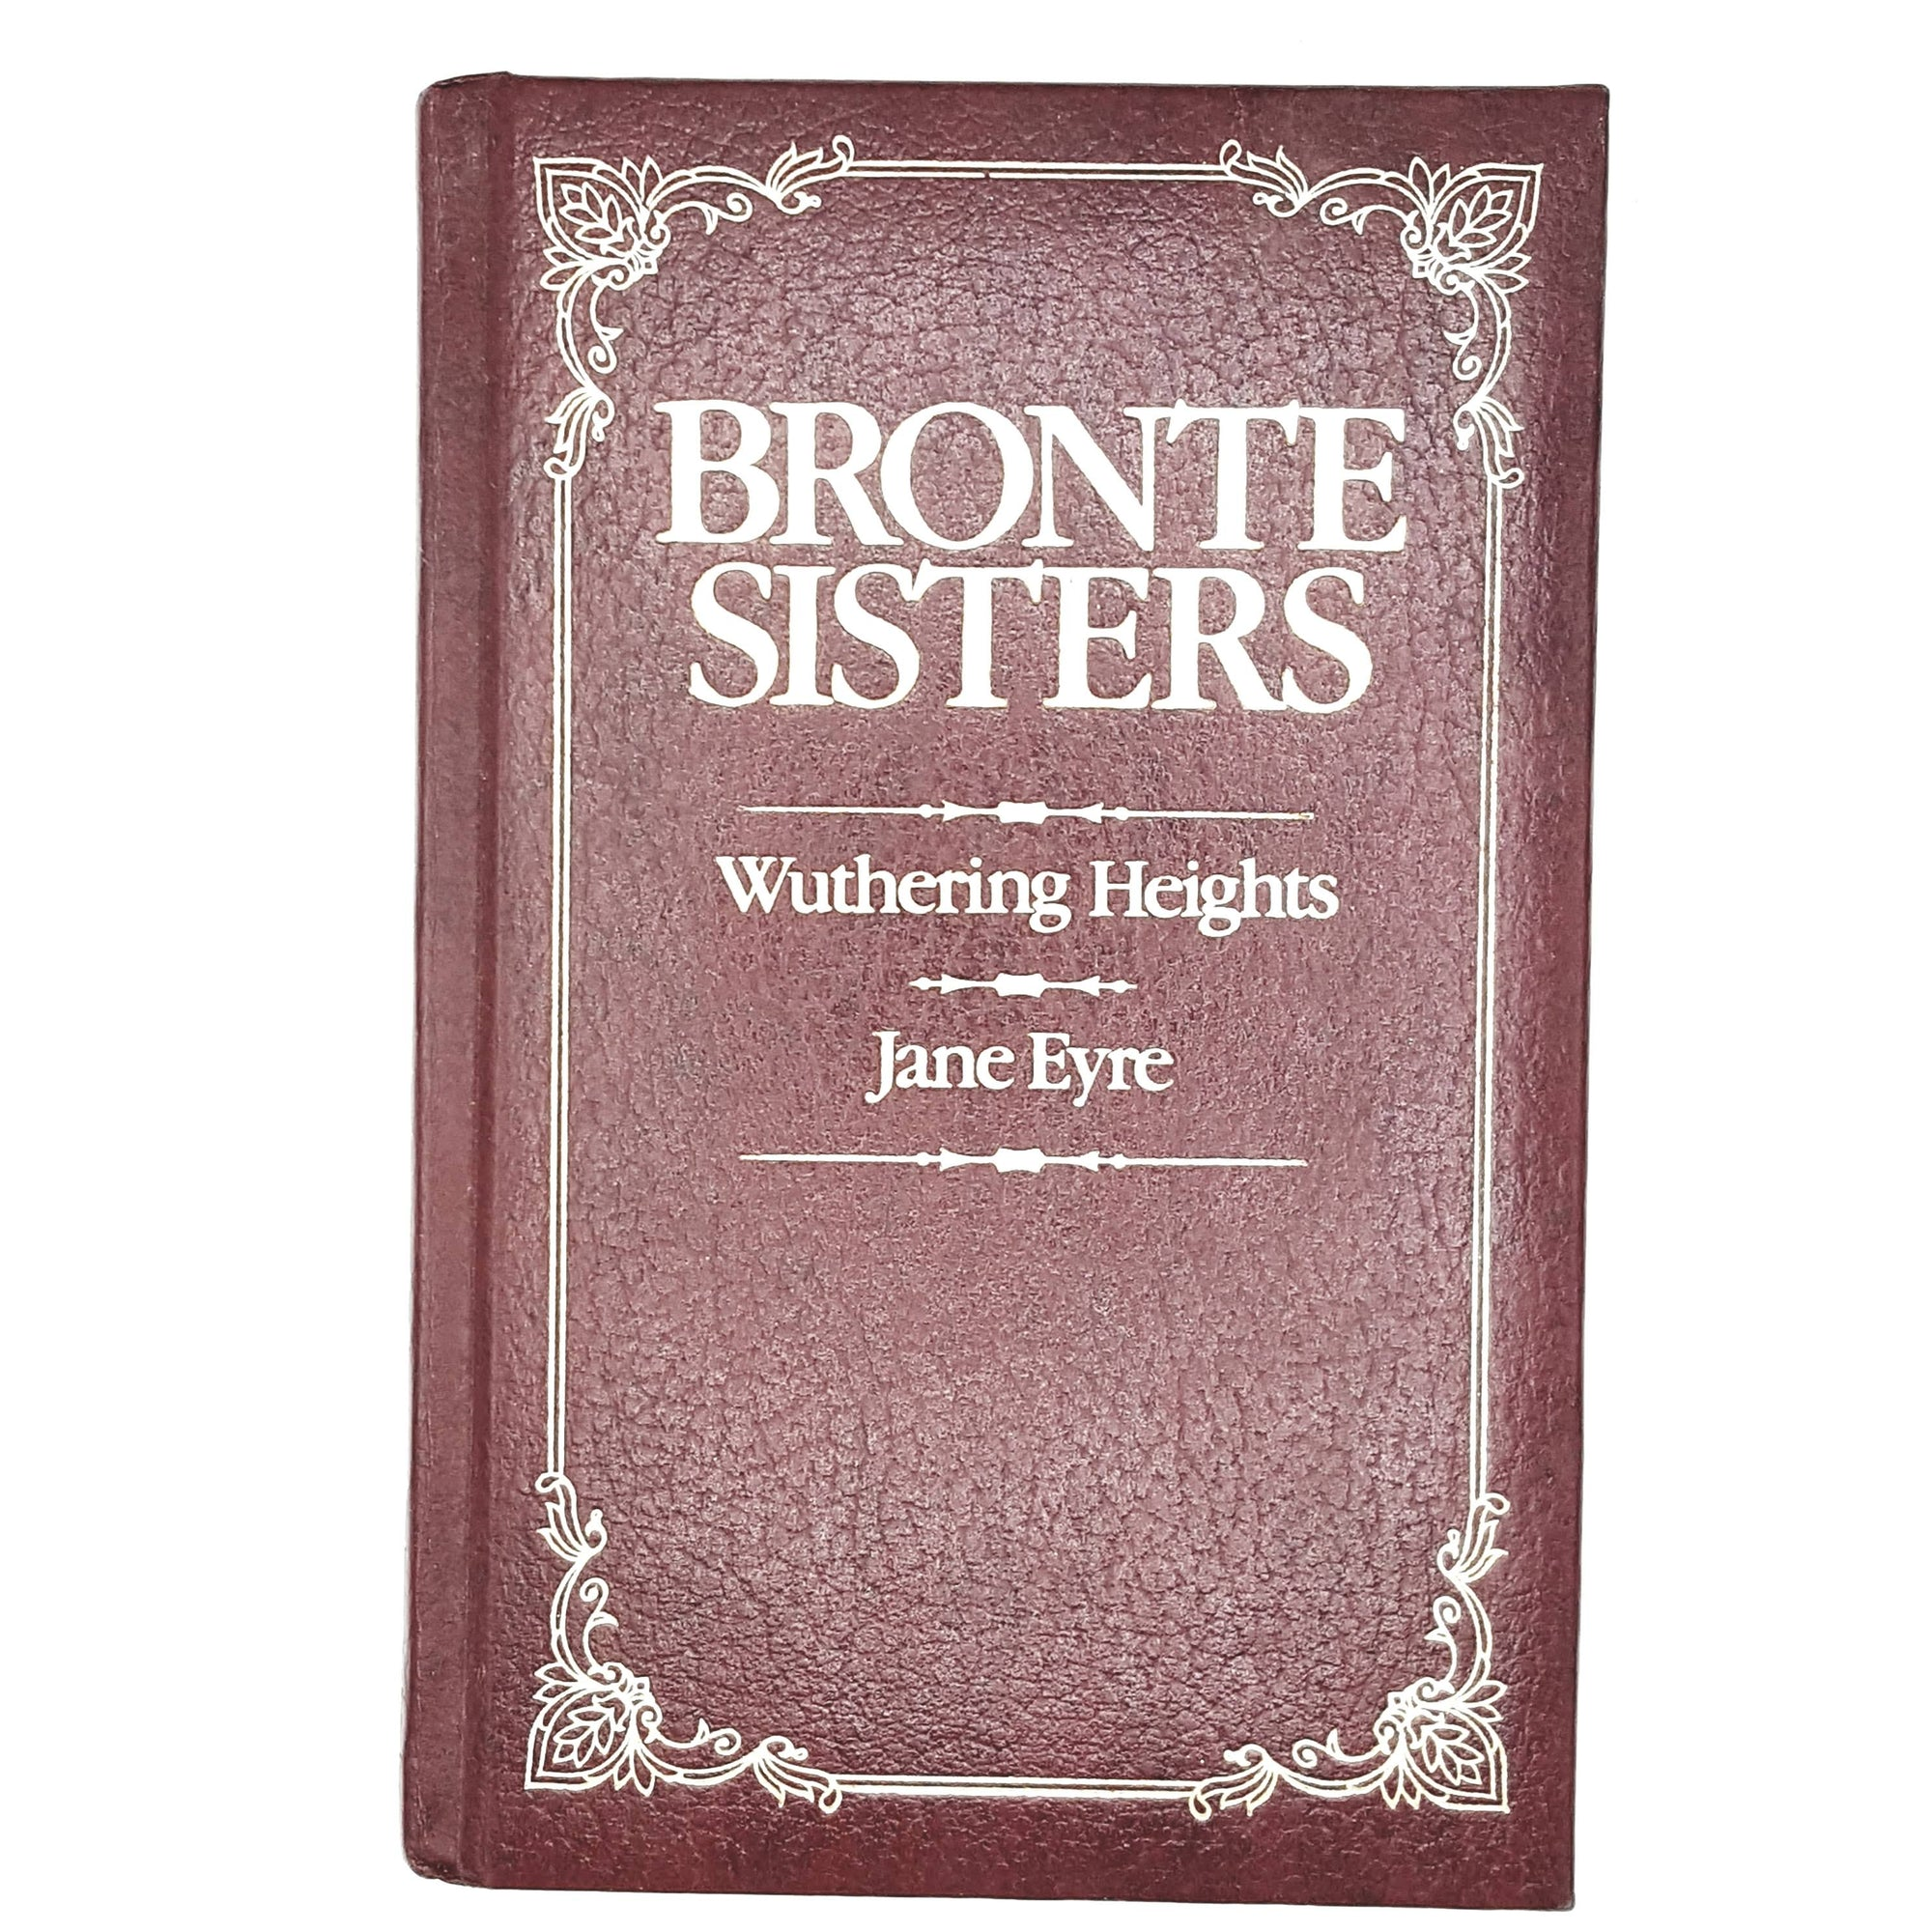 First Edition Brontë Sisters: Wuthering Heights and Jane Eyre 1983